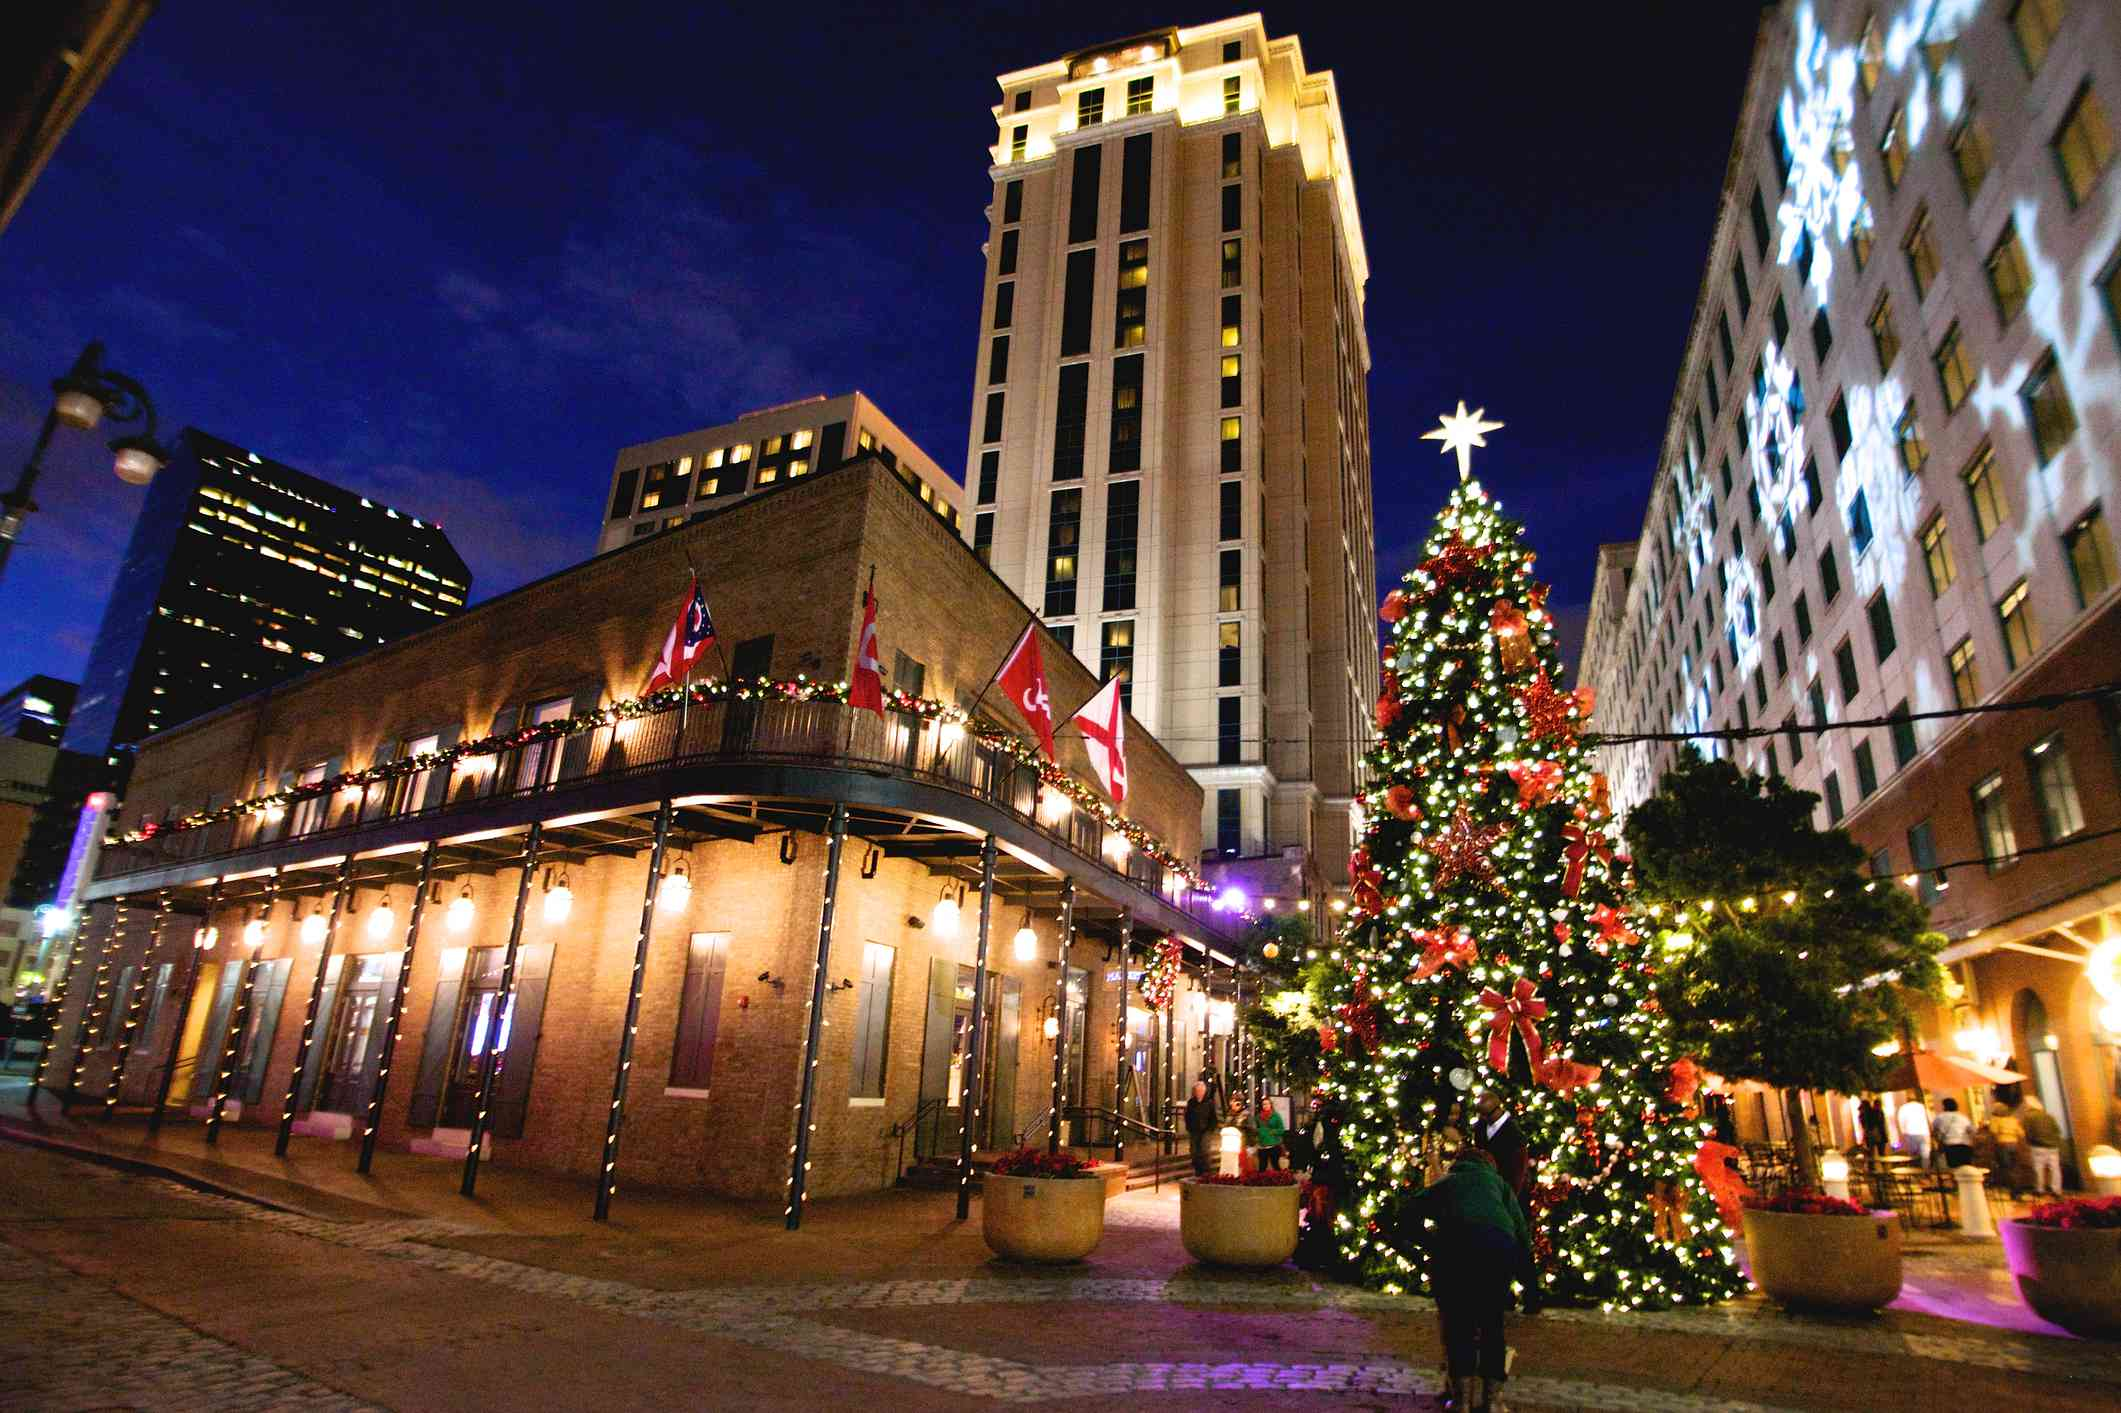 Vacations At Christmas 2021 Southeastern Holiday Attractions And Events In The Southeast Us